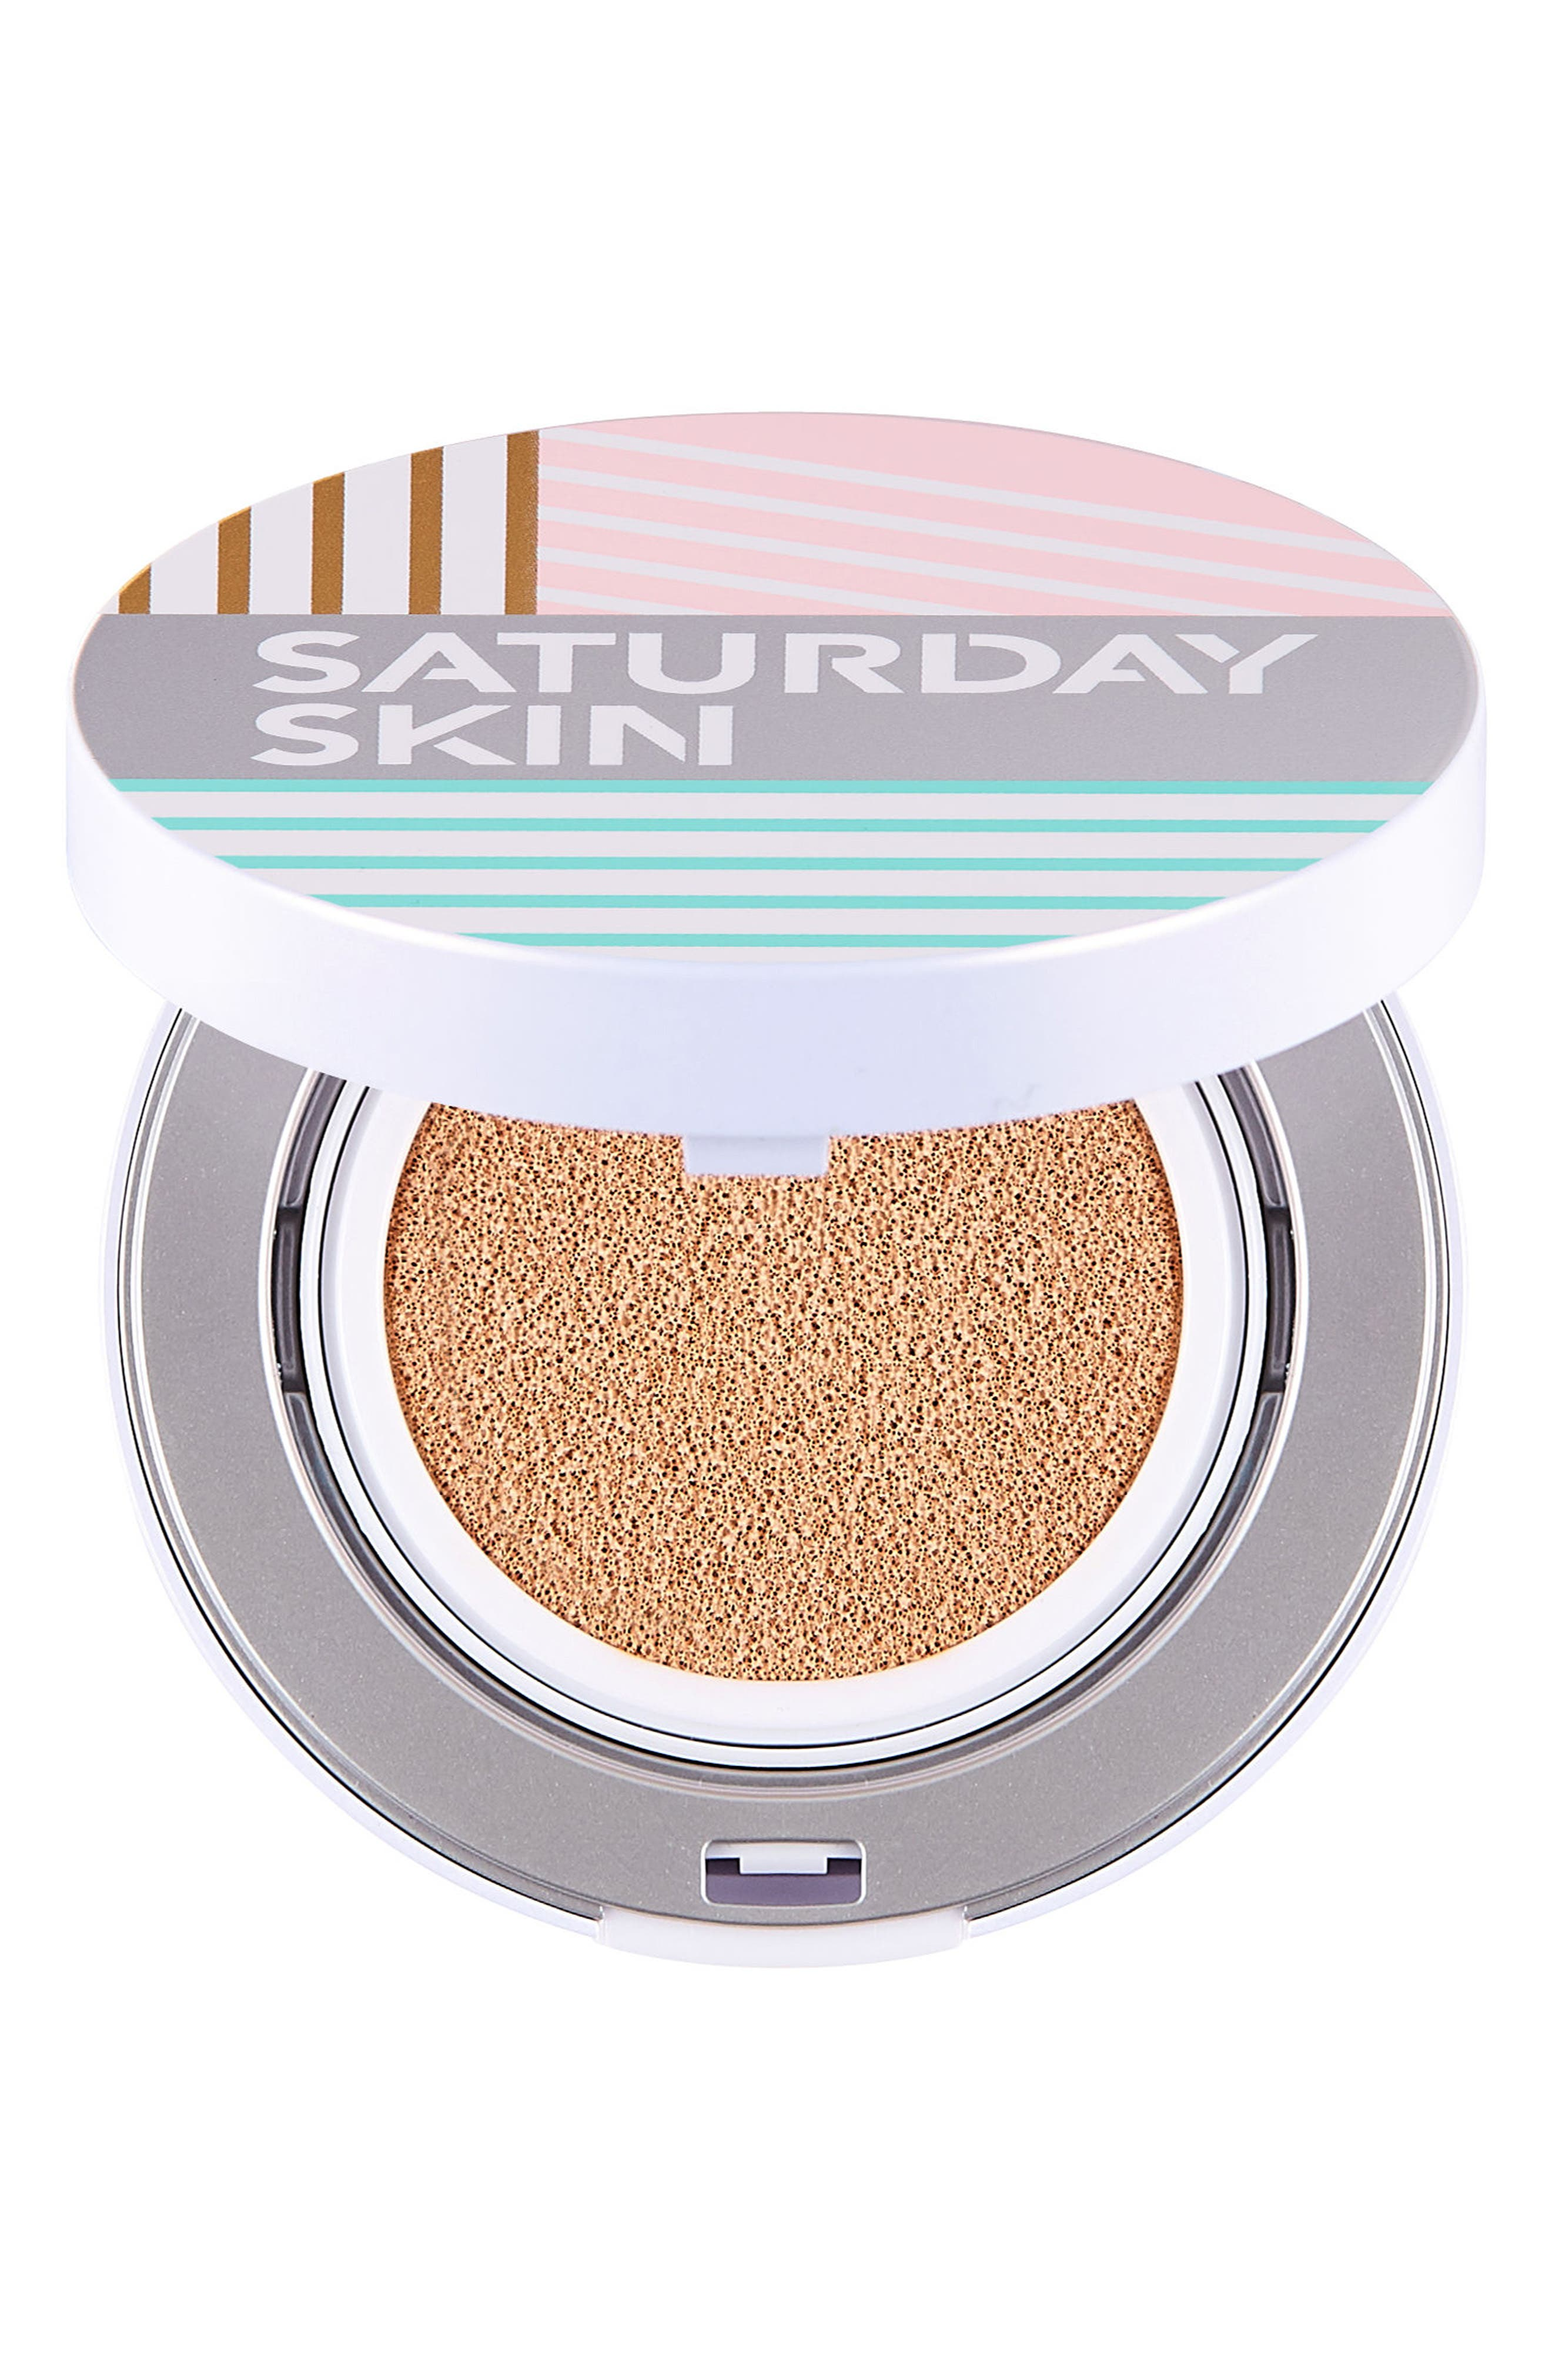 All Aglow Sunscreen Perfection Cushion Compact SPF 50,                             Alternate thumbnail 2, color,                             02 CHAMPAGNE